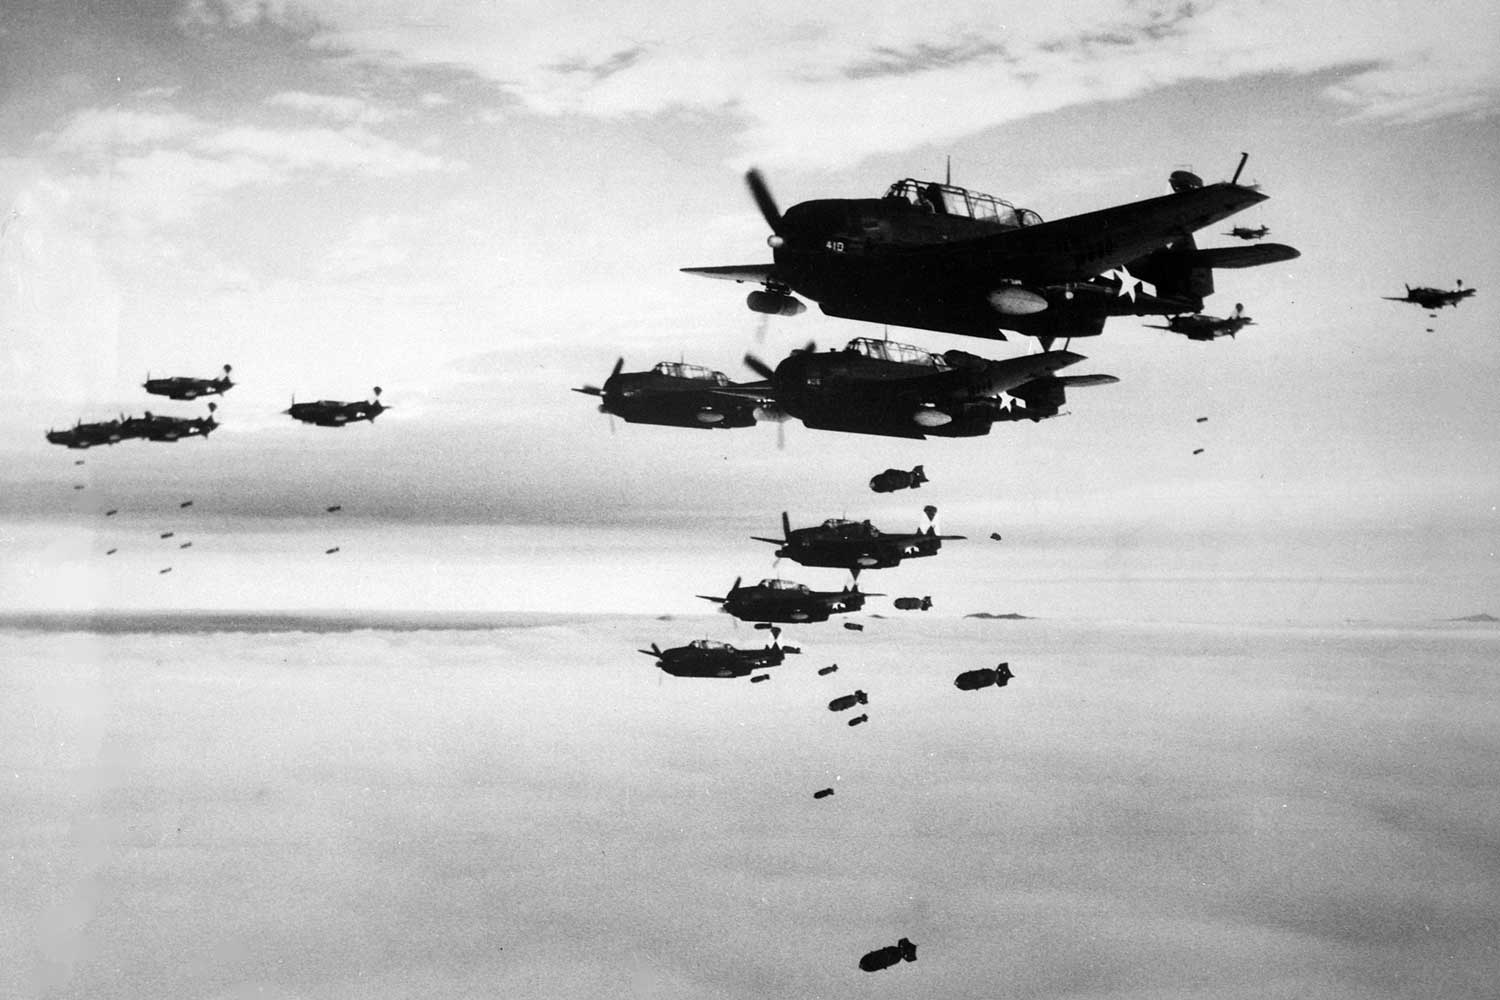 The Second World War was total, modern war fought in every domain, on land, over the sea and in the air